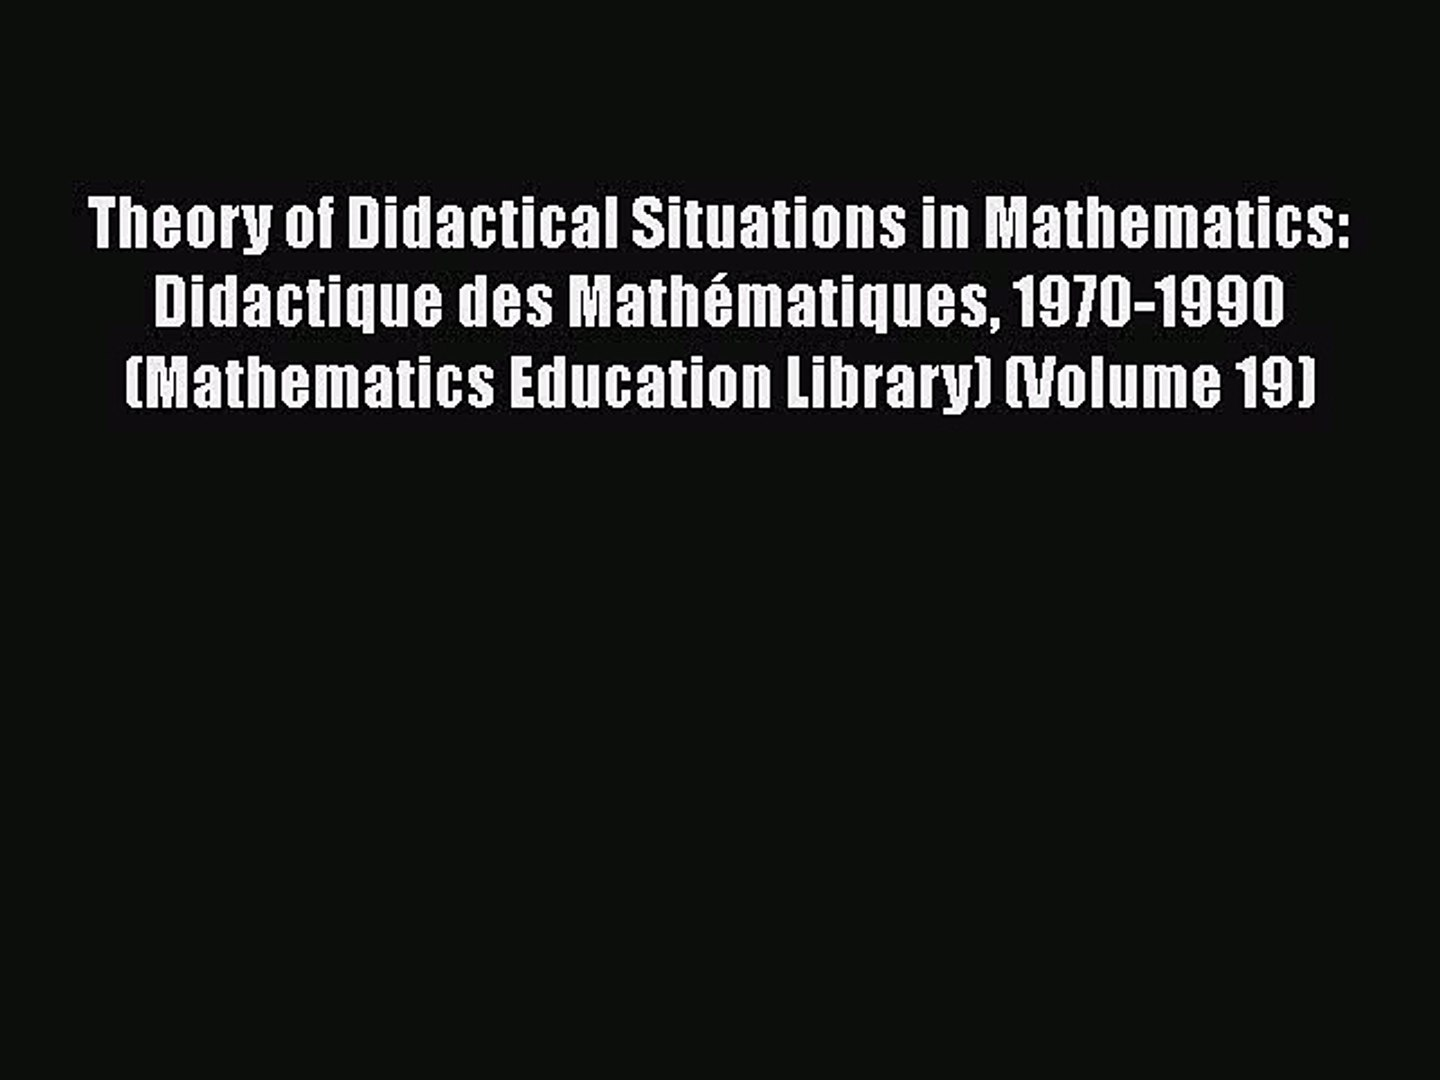 Theory of Didactical Situations in Mathematics: Didactique des mathématiques, 1970-1990